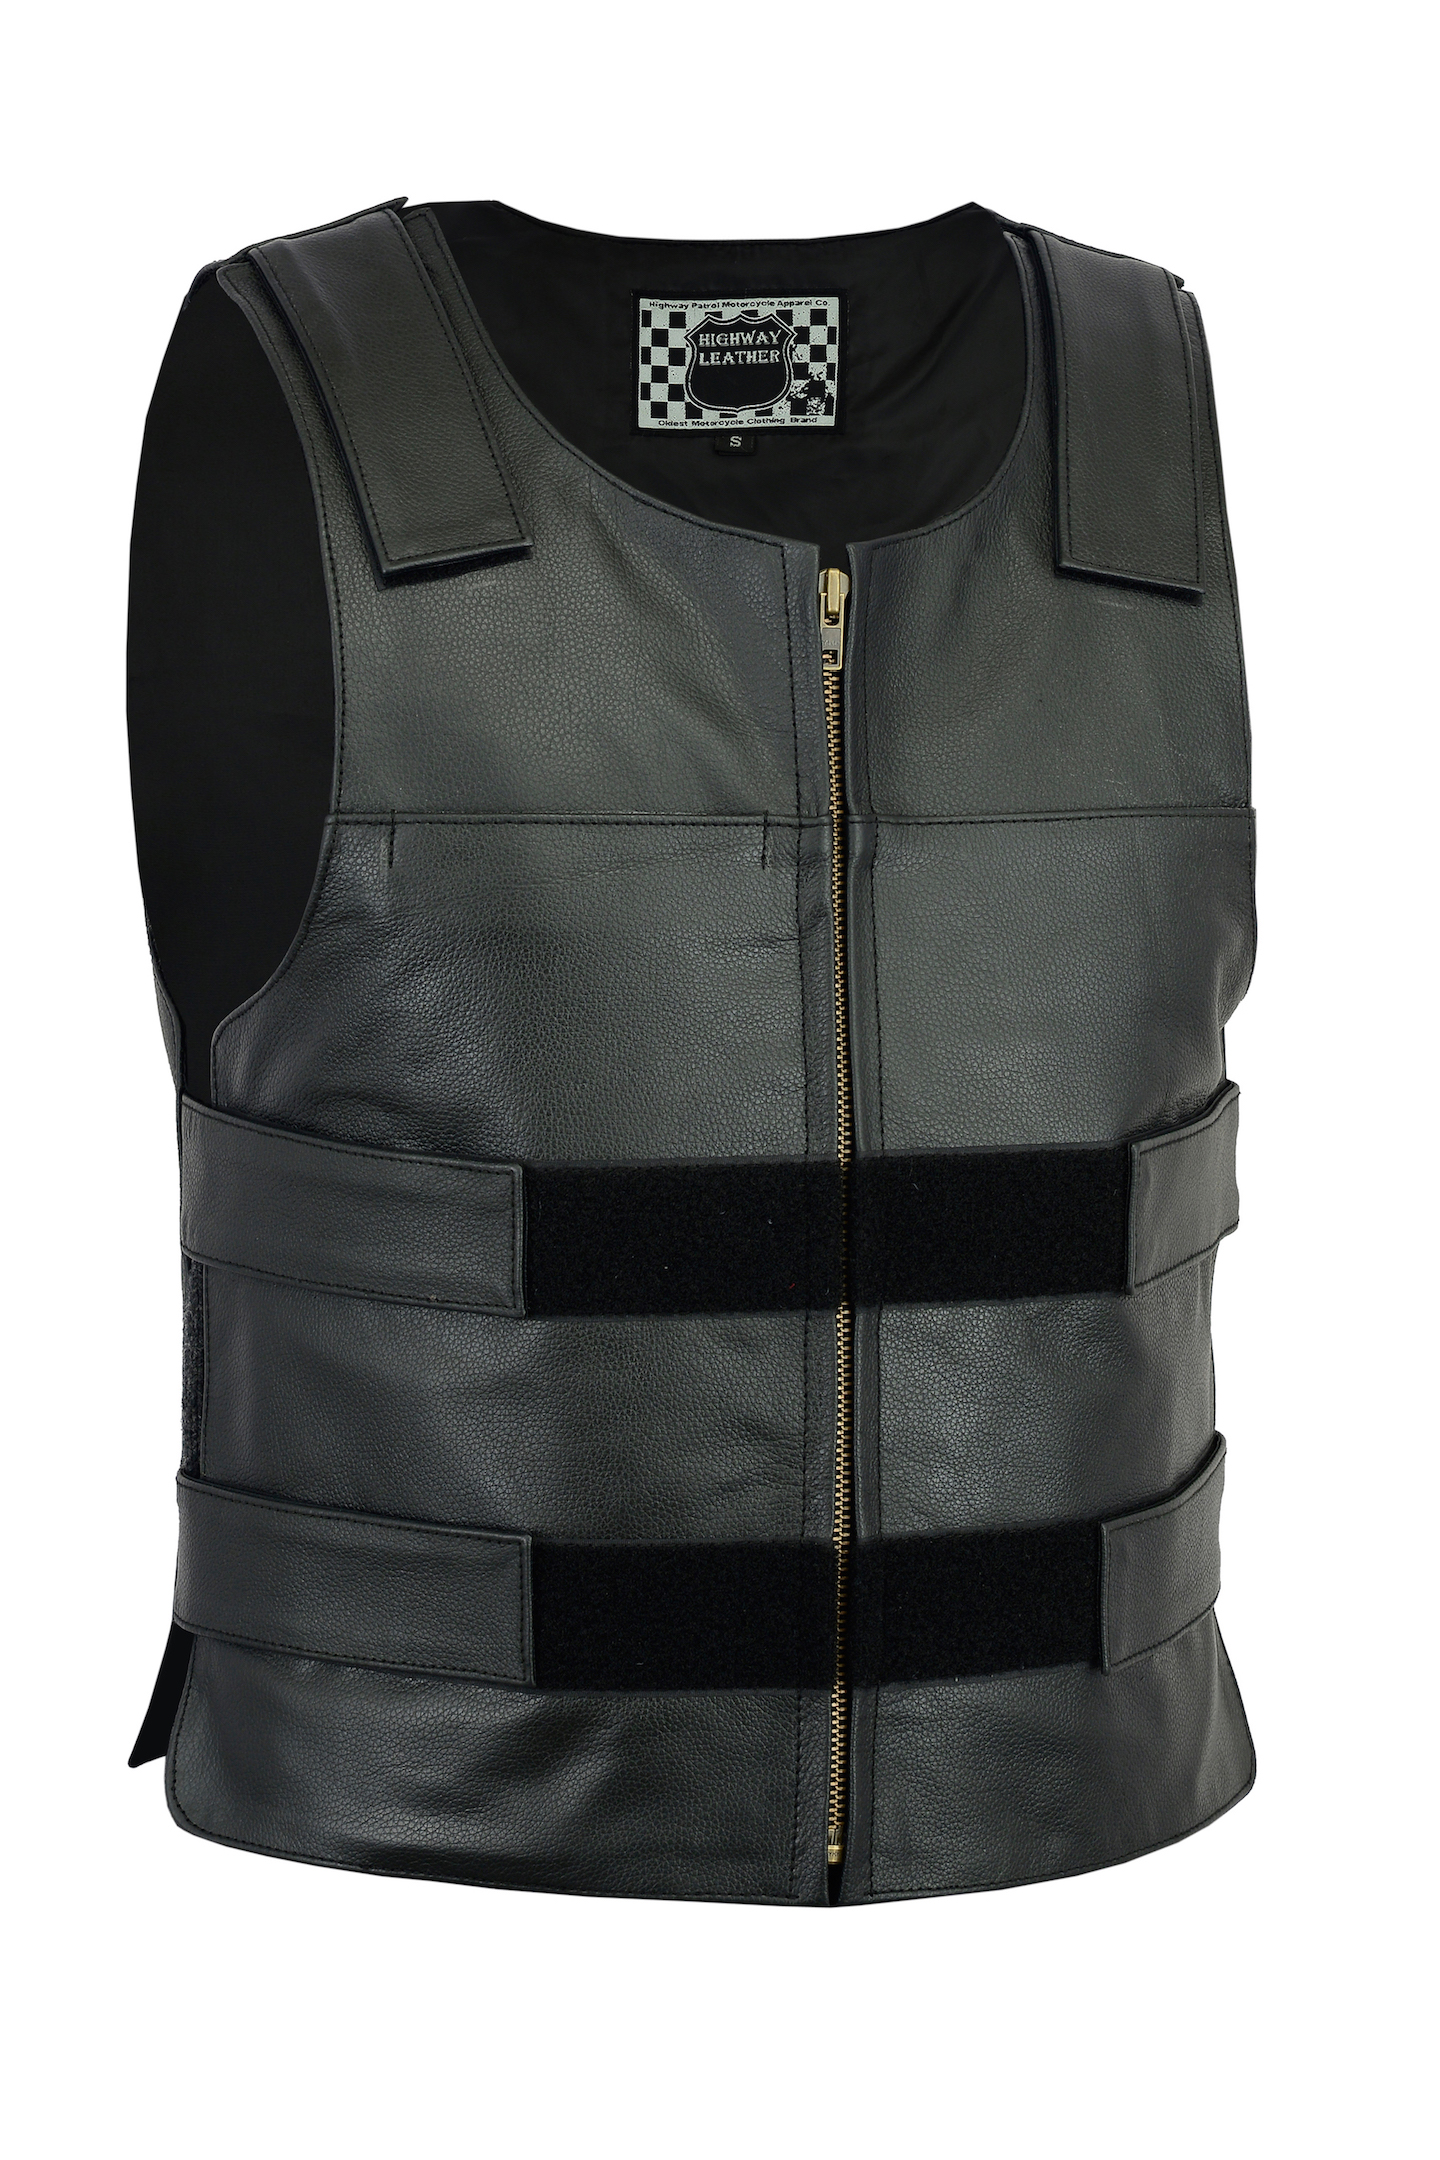 72df35359eb6 Bulletproof Style tactical street leather vest